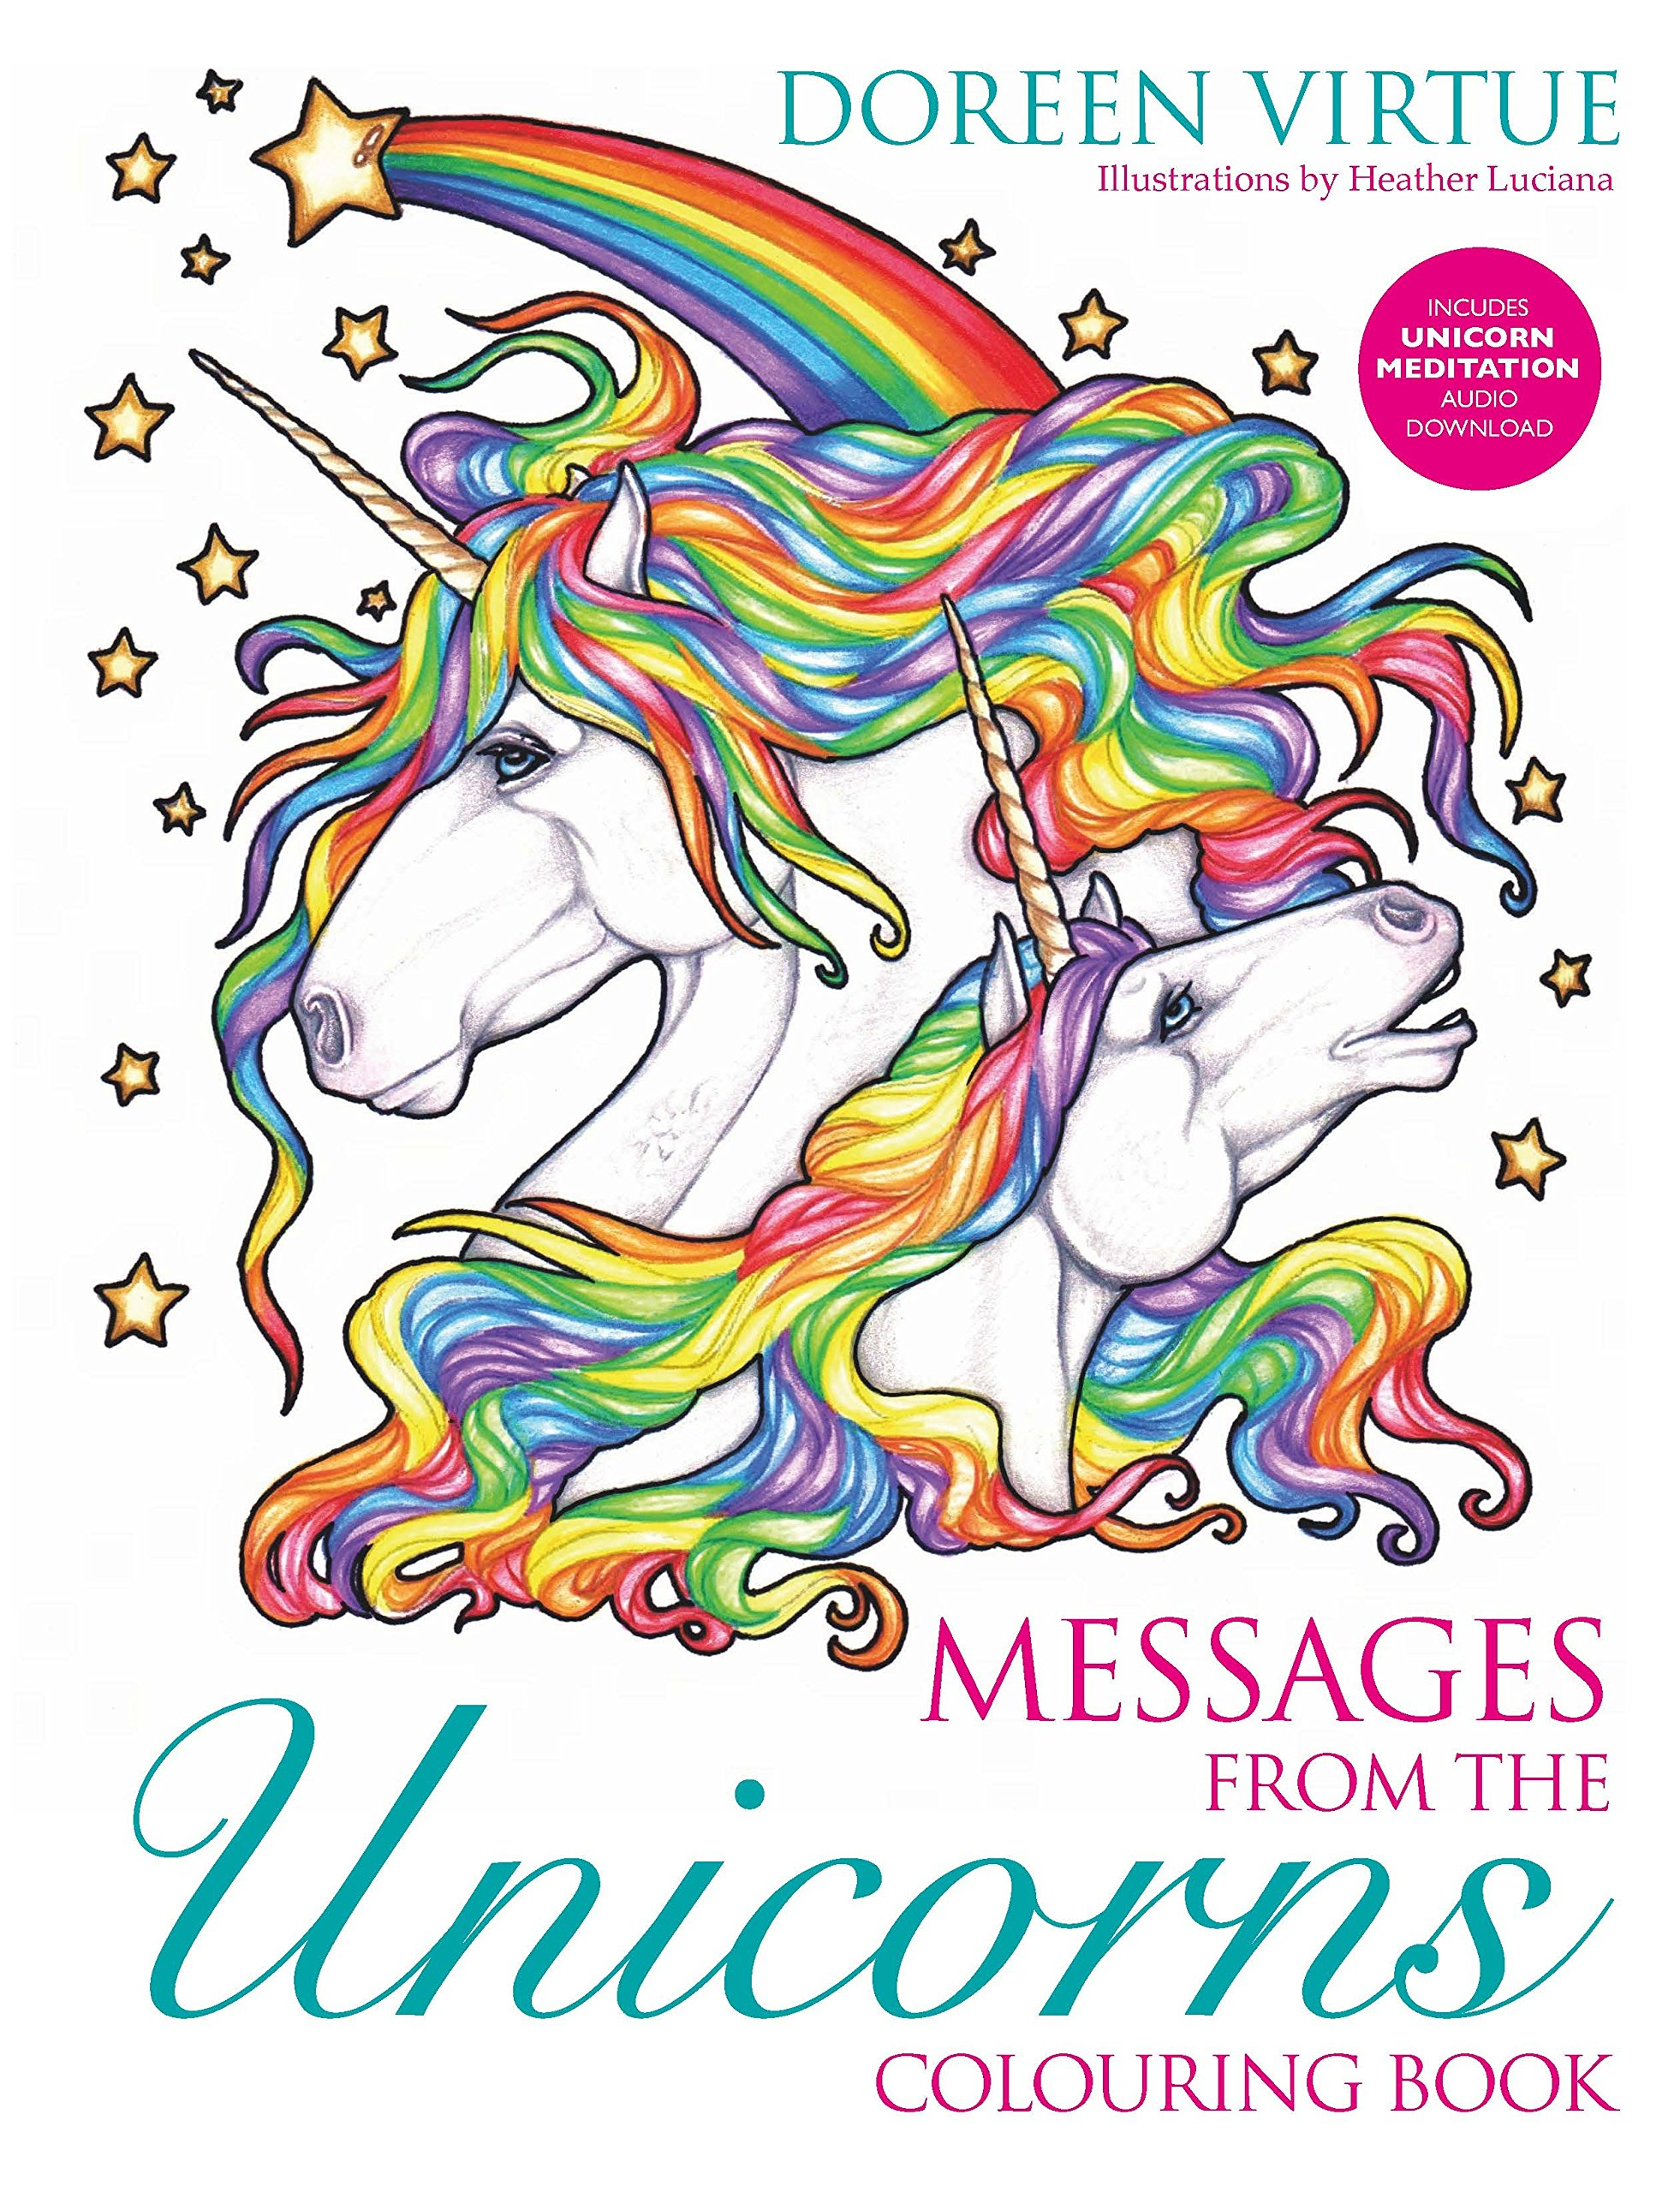 Amazon.com: Messages from the Unicorns Coloring Book (9781401952891 ...